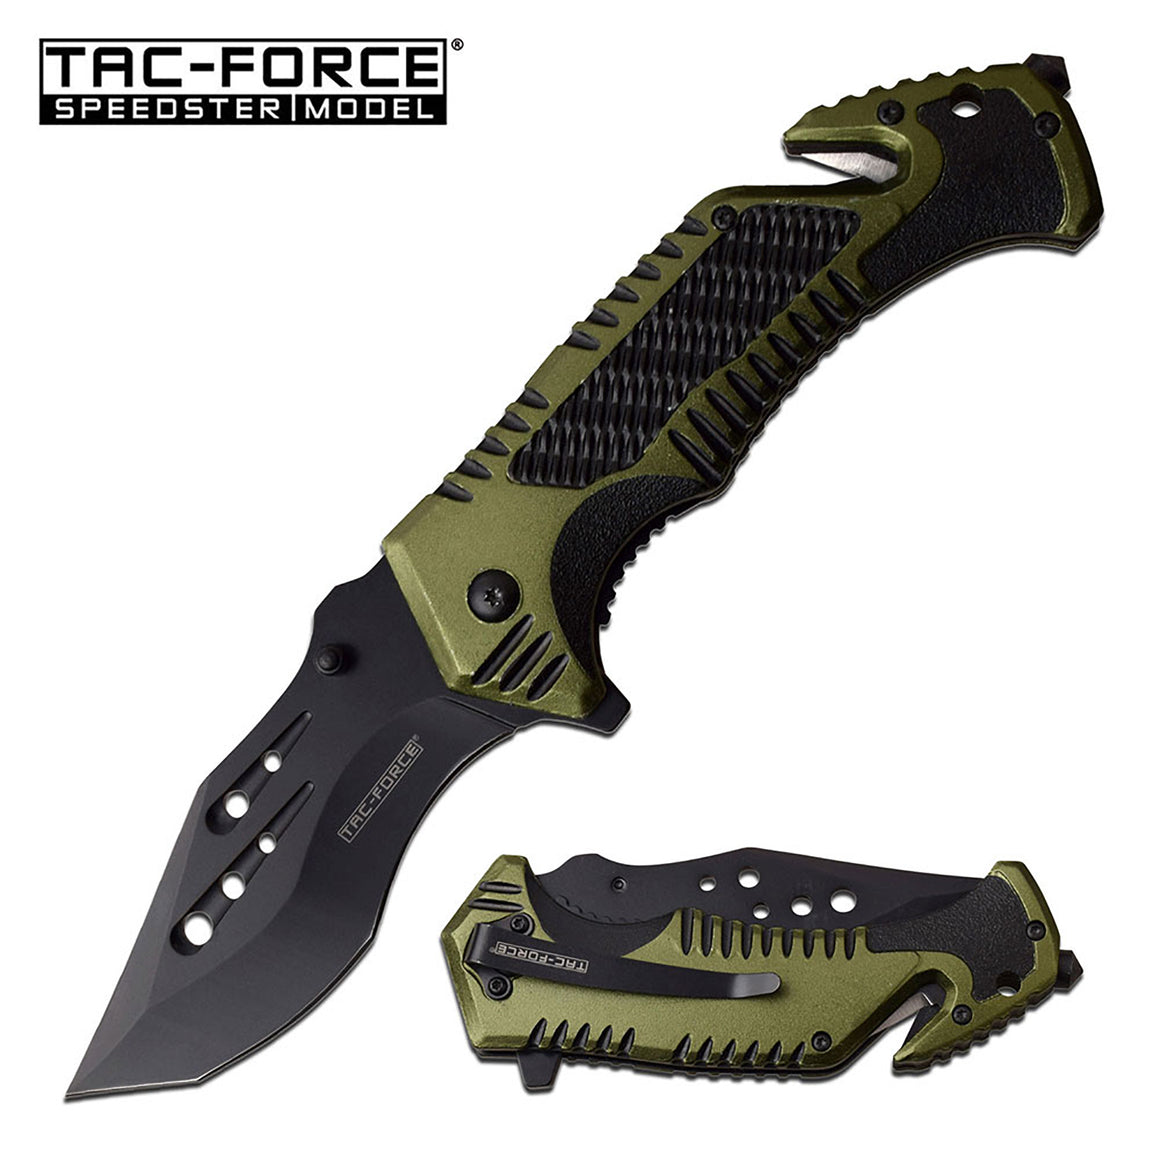 Tac-Force TF-954BGN Spring Assisted Knife